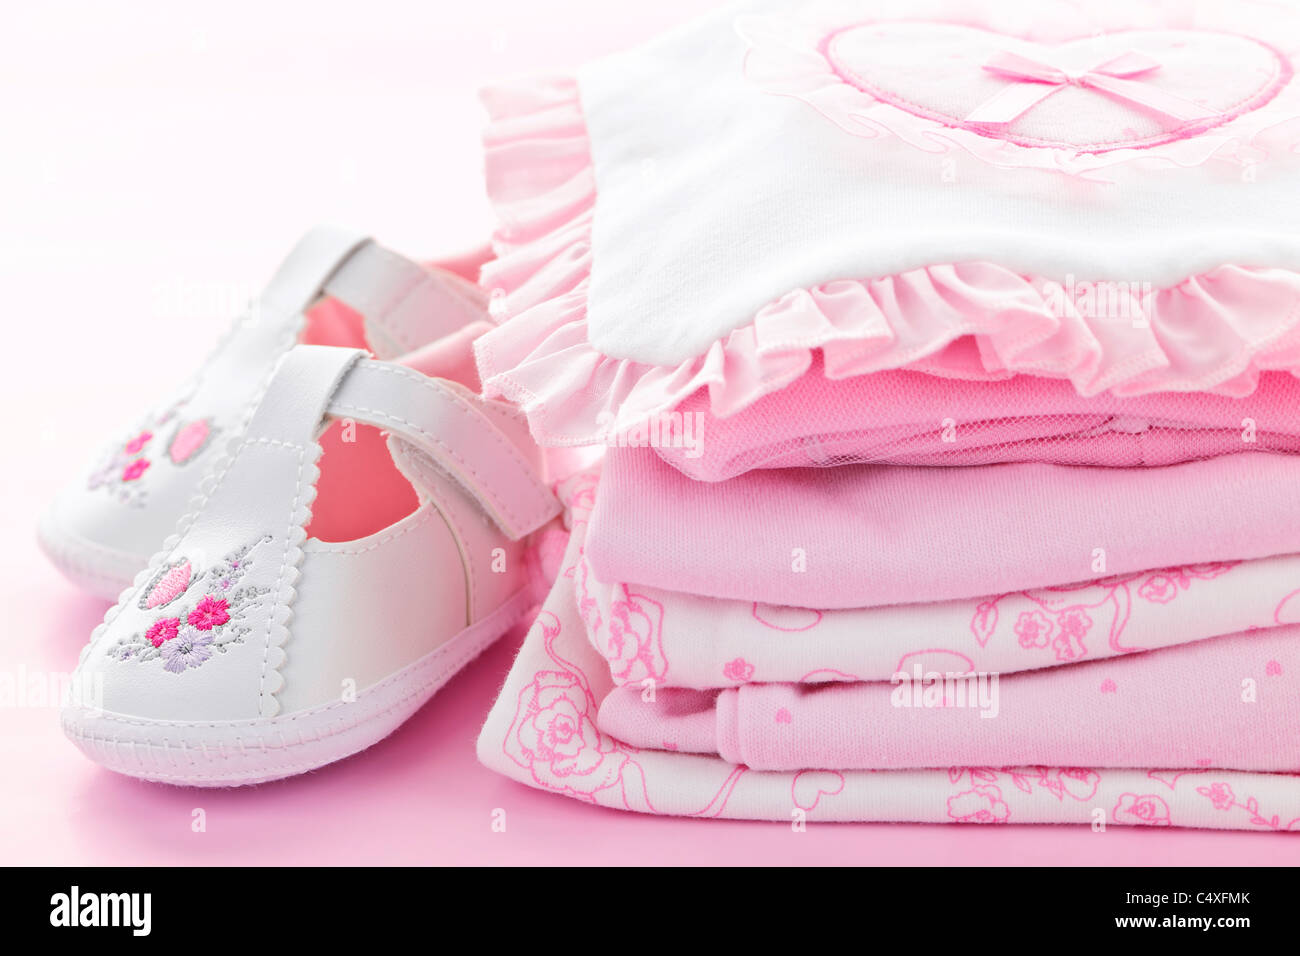 25e116cabdd98 Pink infant girl clothing and shoes for baby shower - Stock Image